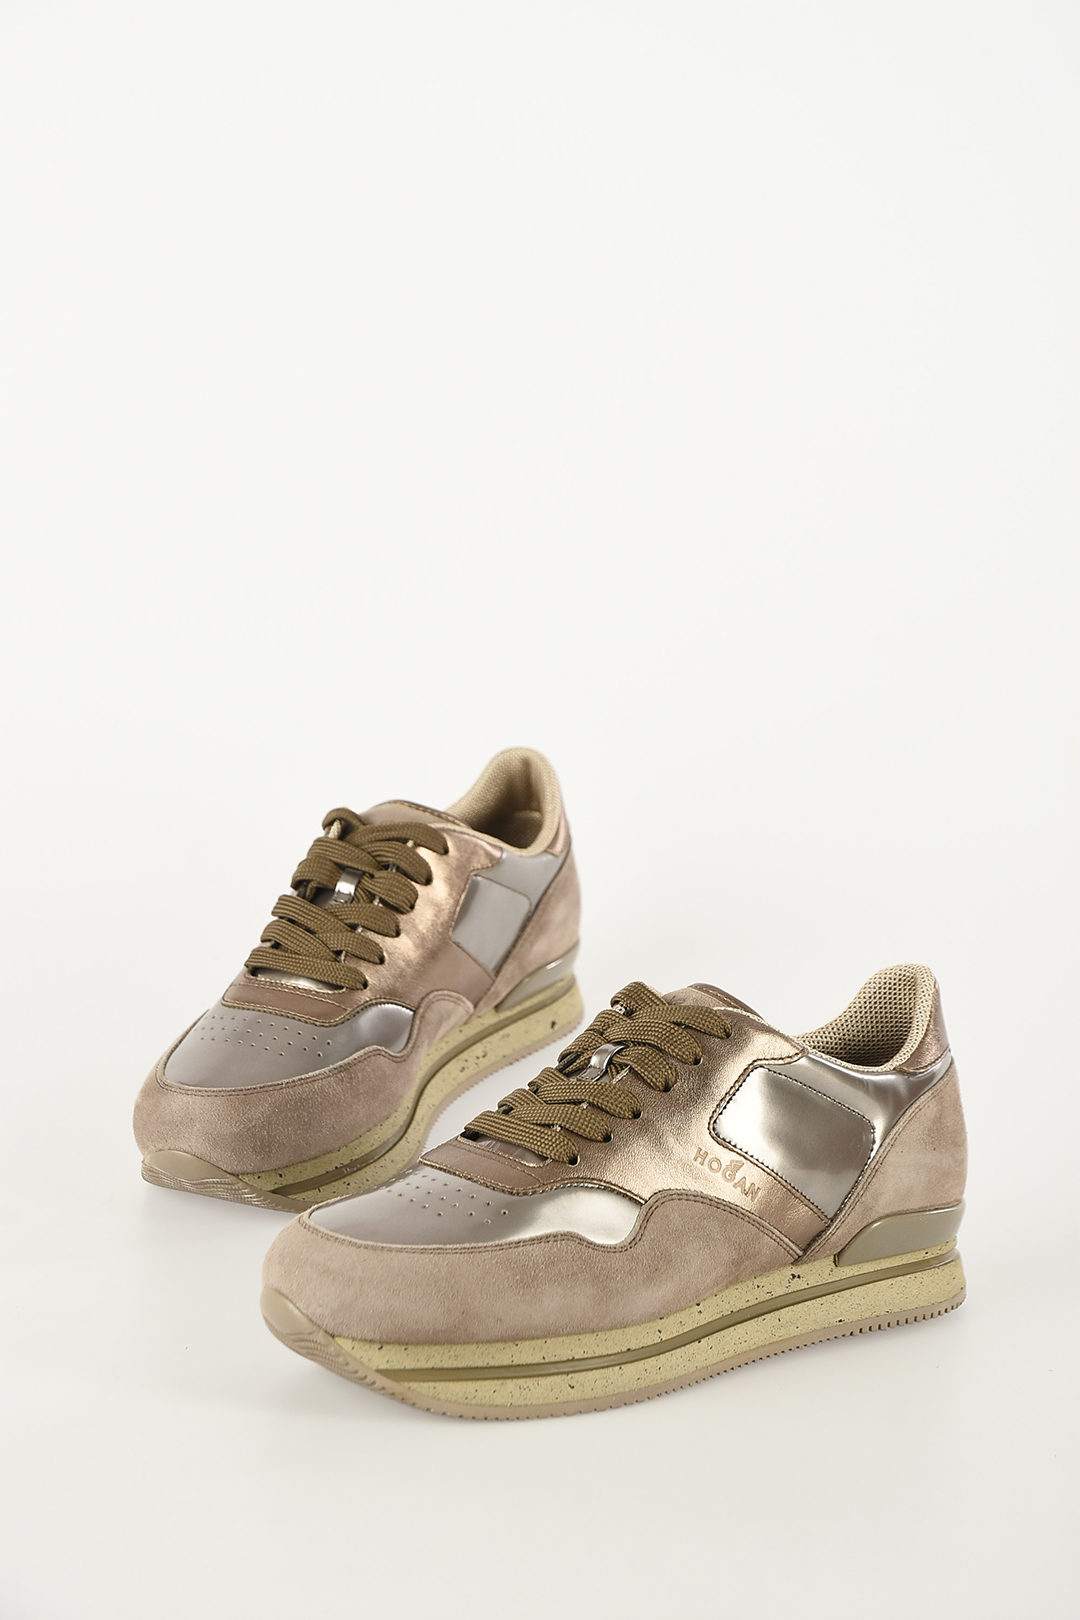 Suede Leather H222 Sneakers